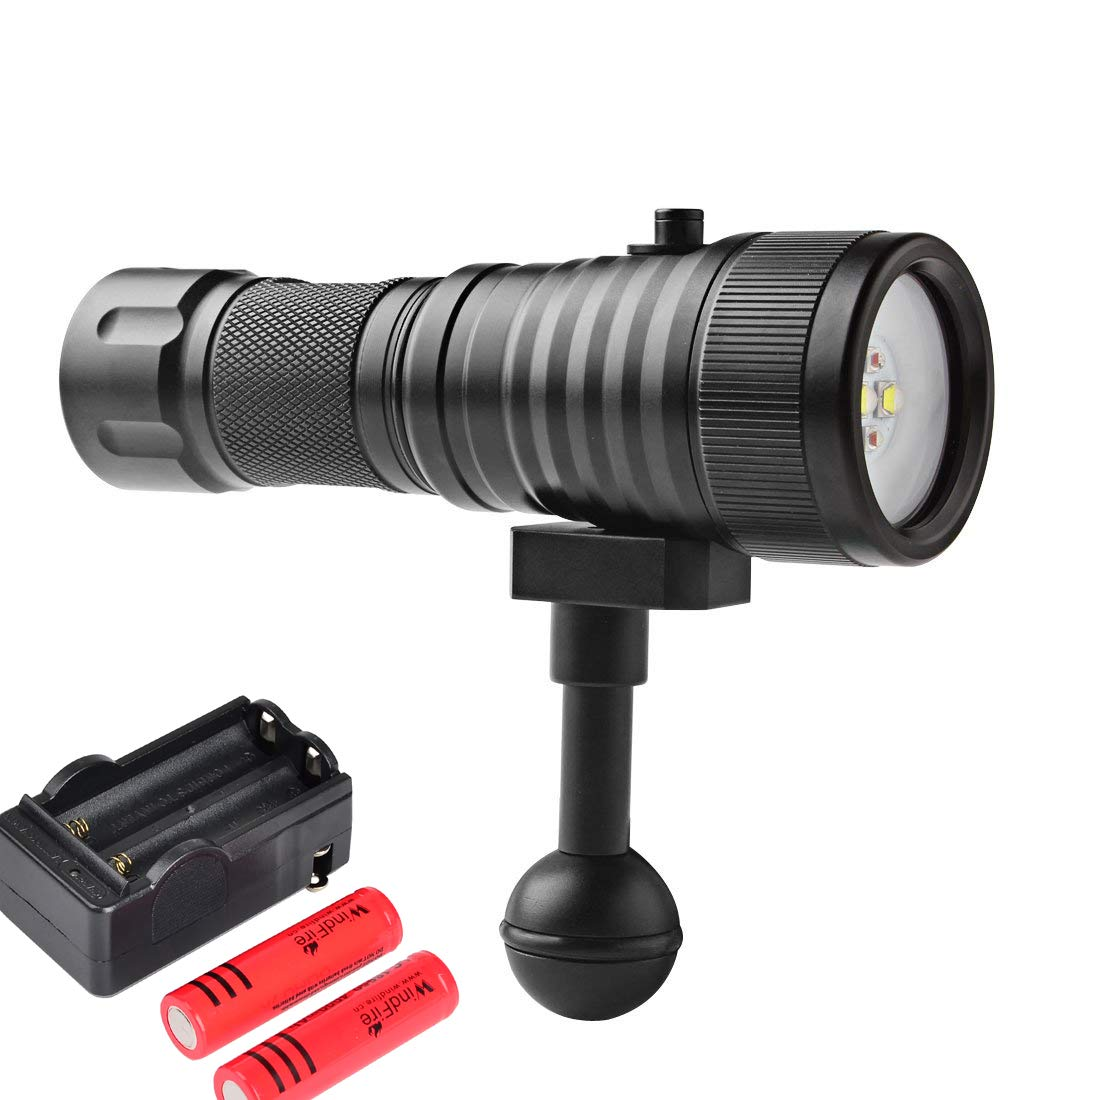 WINDFIRE Scuba Diving Flashlight Underwater 200M Video Camera Photography Light Torch Diving Flashlight with Ball Joint Bracket,18650 Rechargeable Batteries and Charger by WINDFIRE